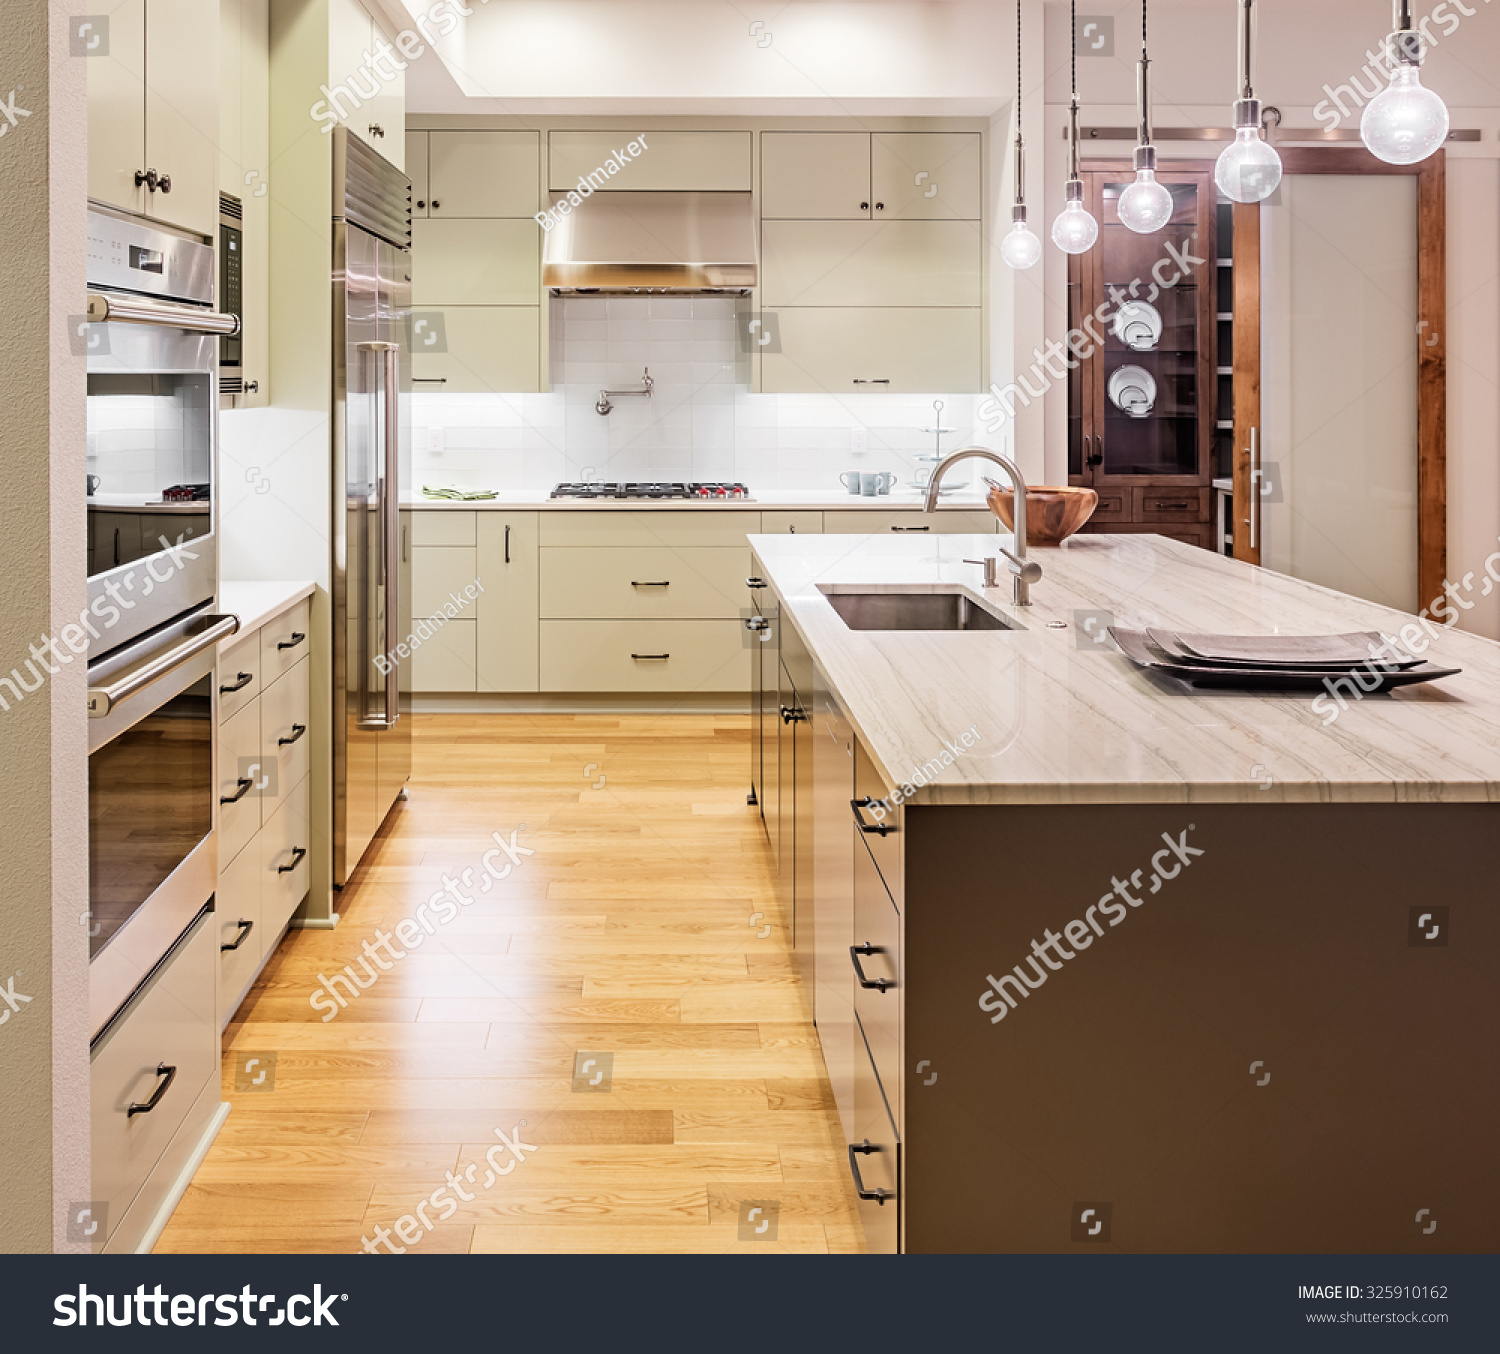 Kitchen Interior With Island, Sink, Cabinets, And Hardwood